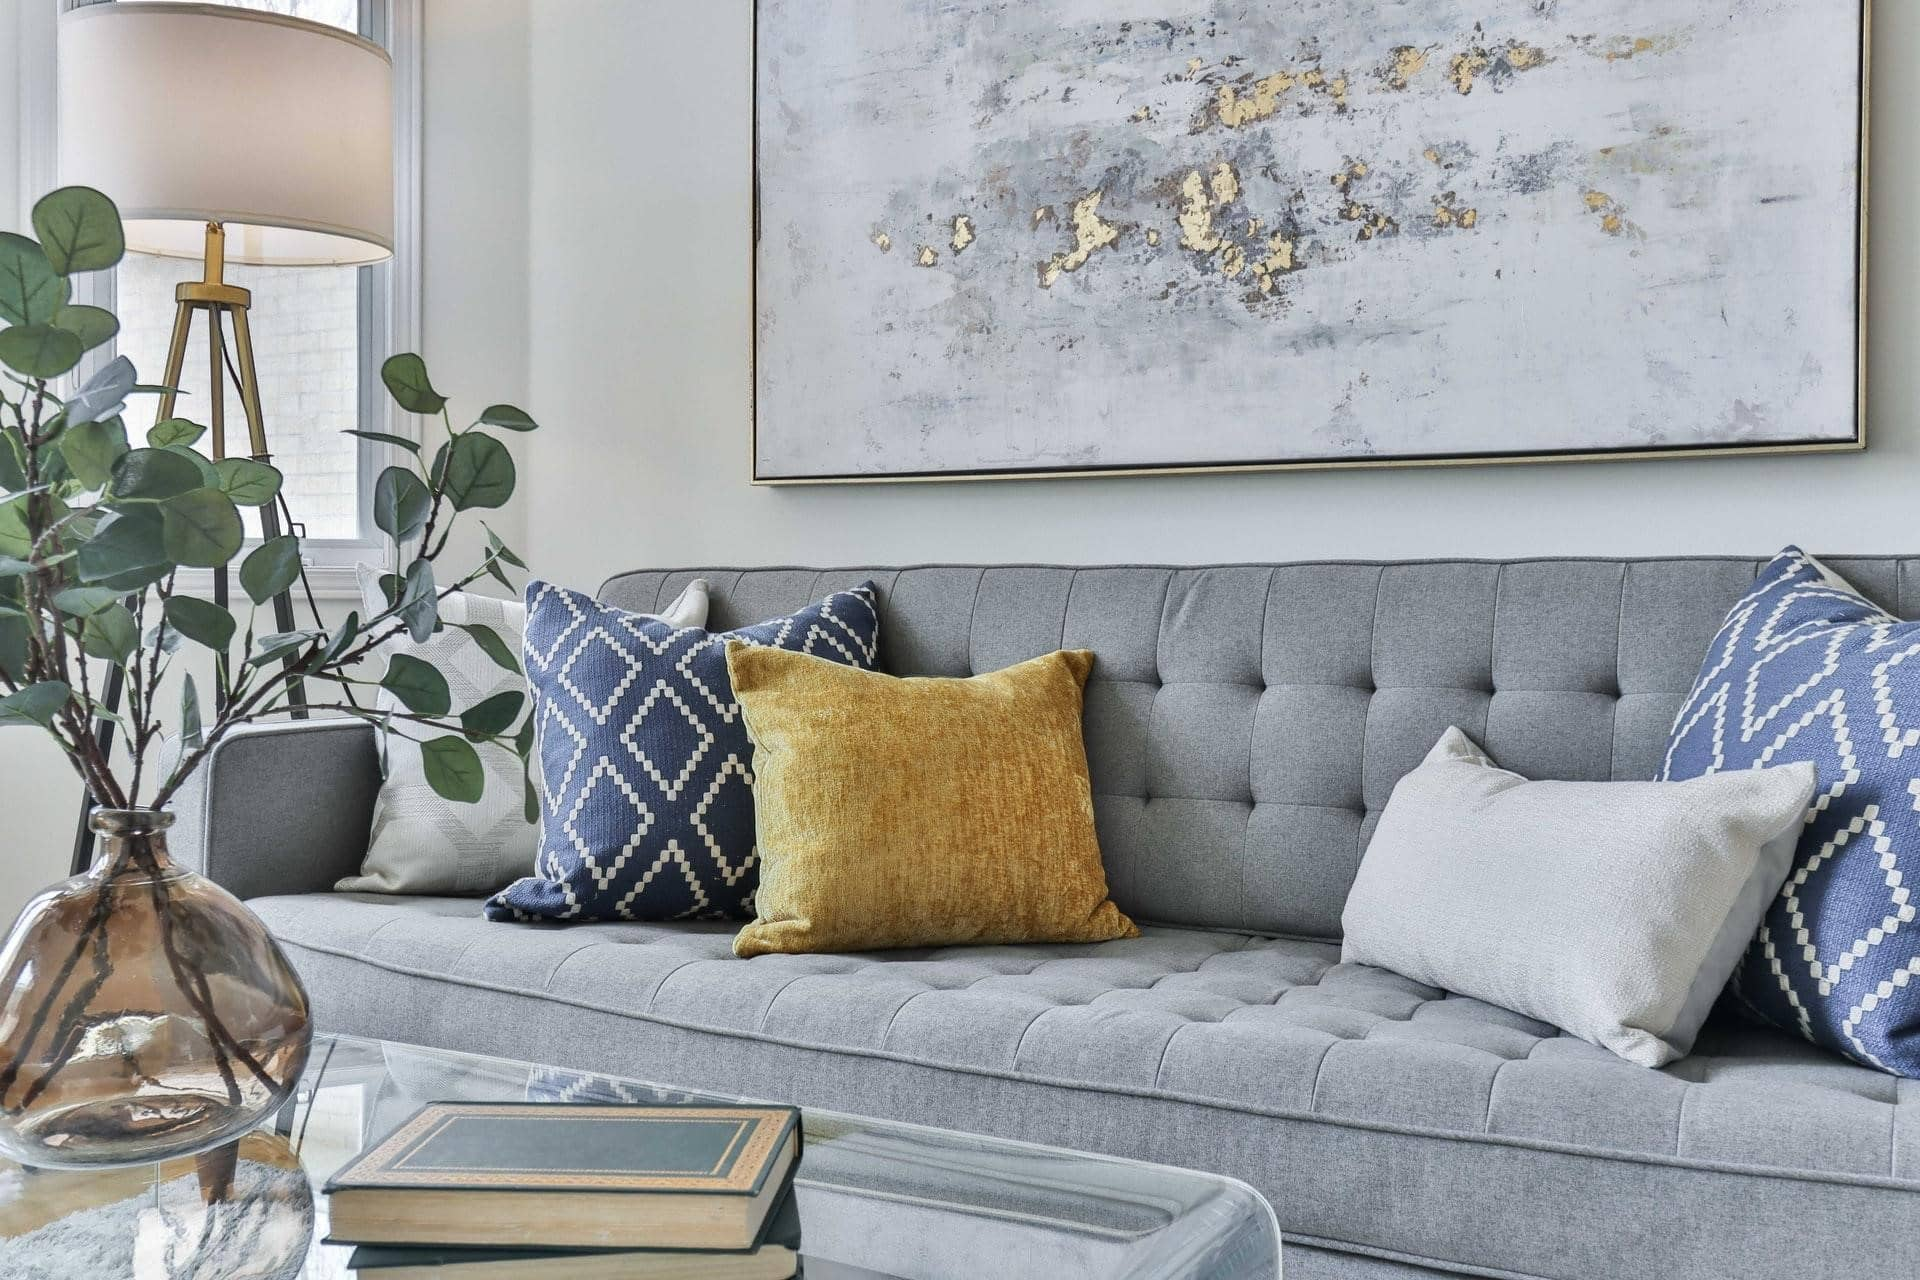 Styling Ideas For An Ultra Chic Home